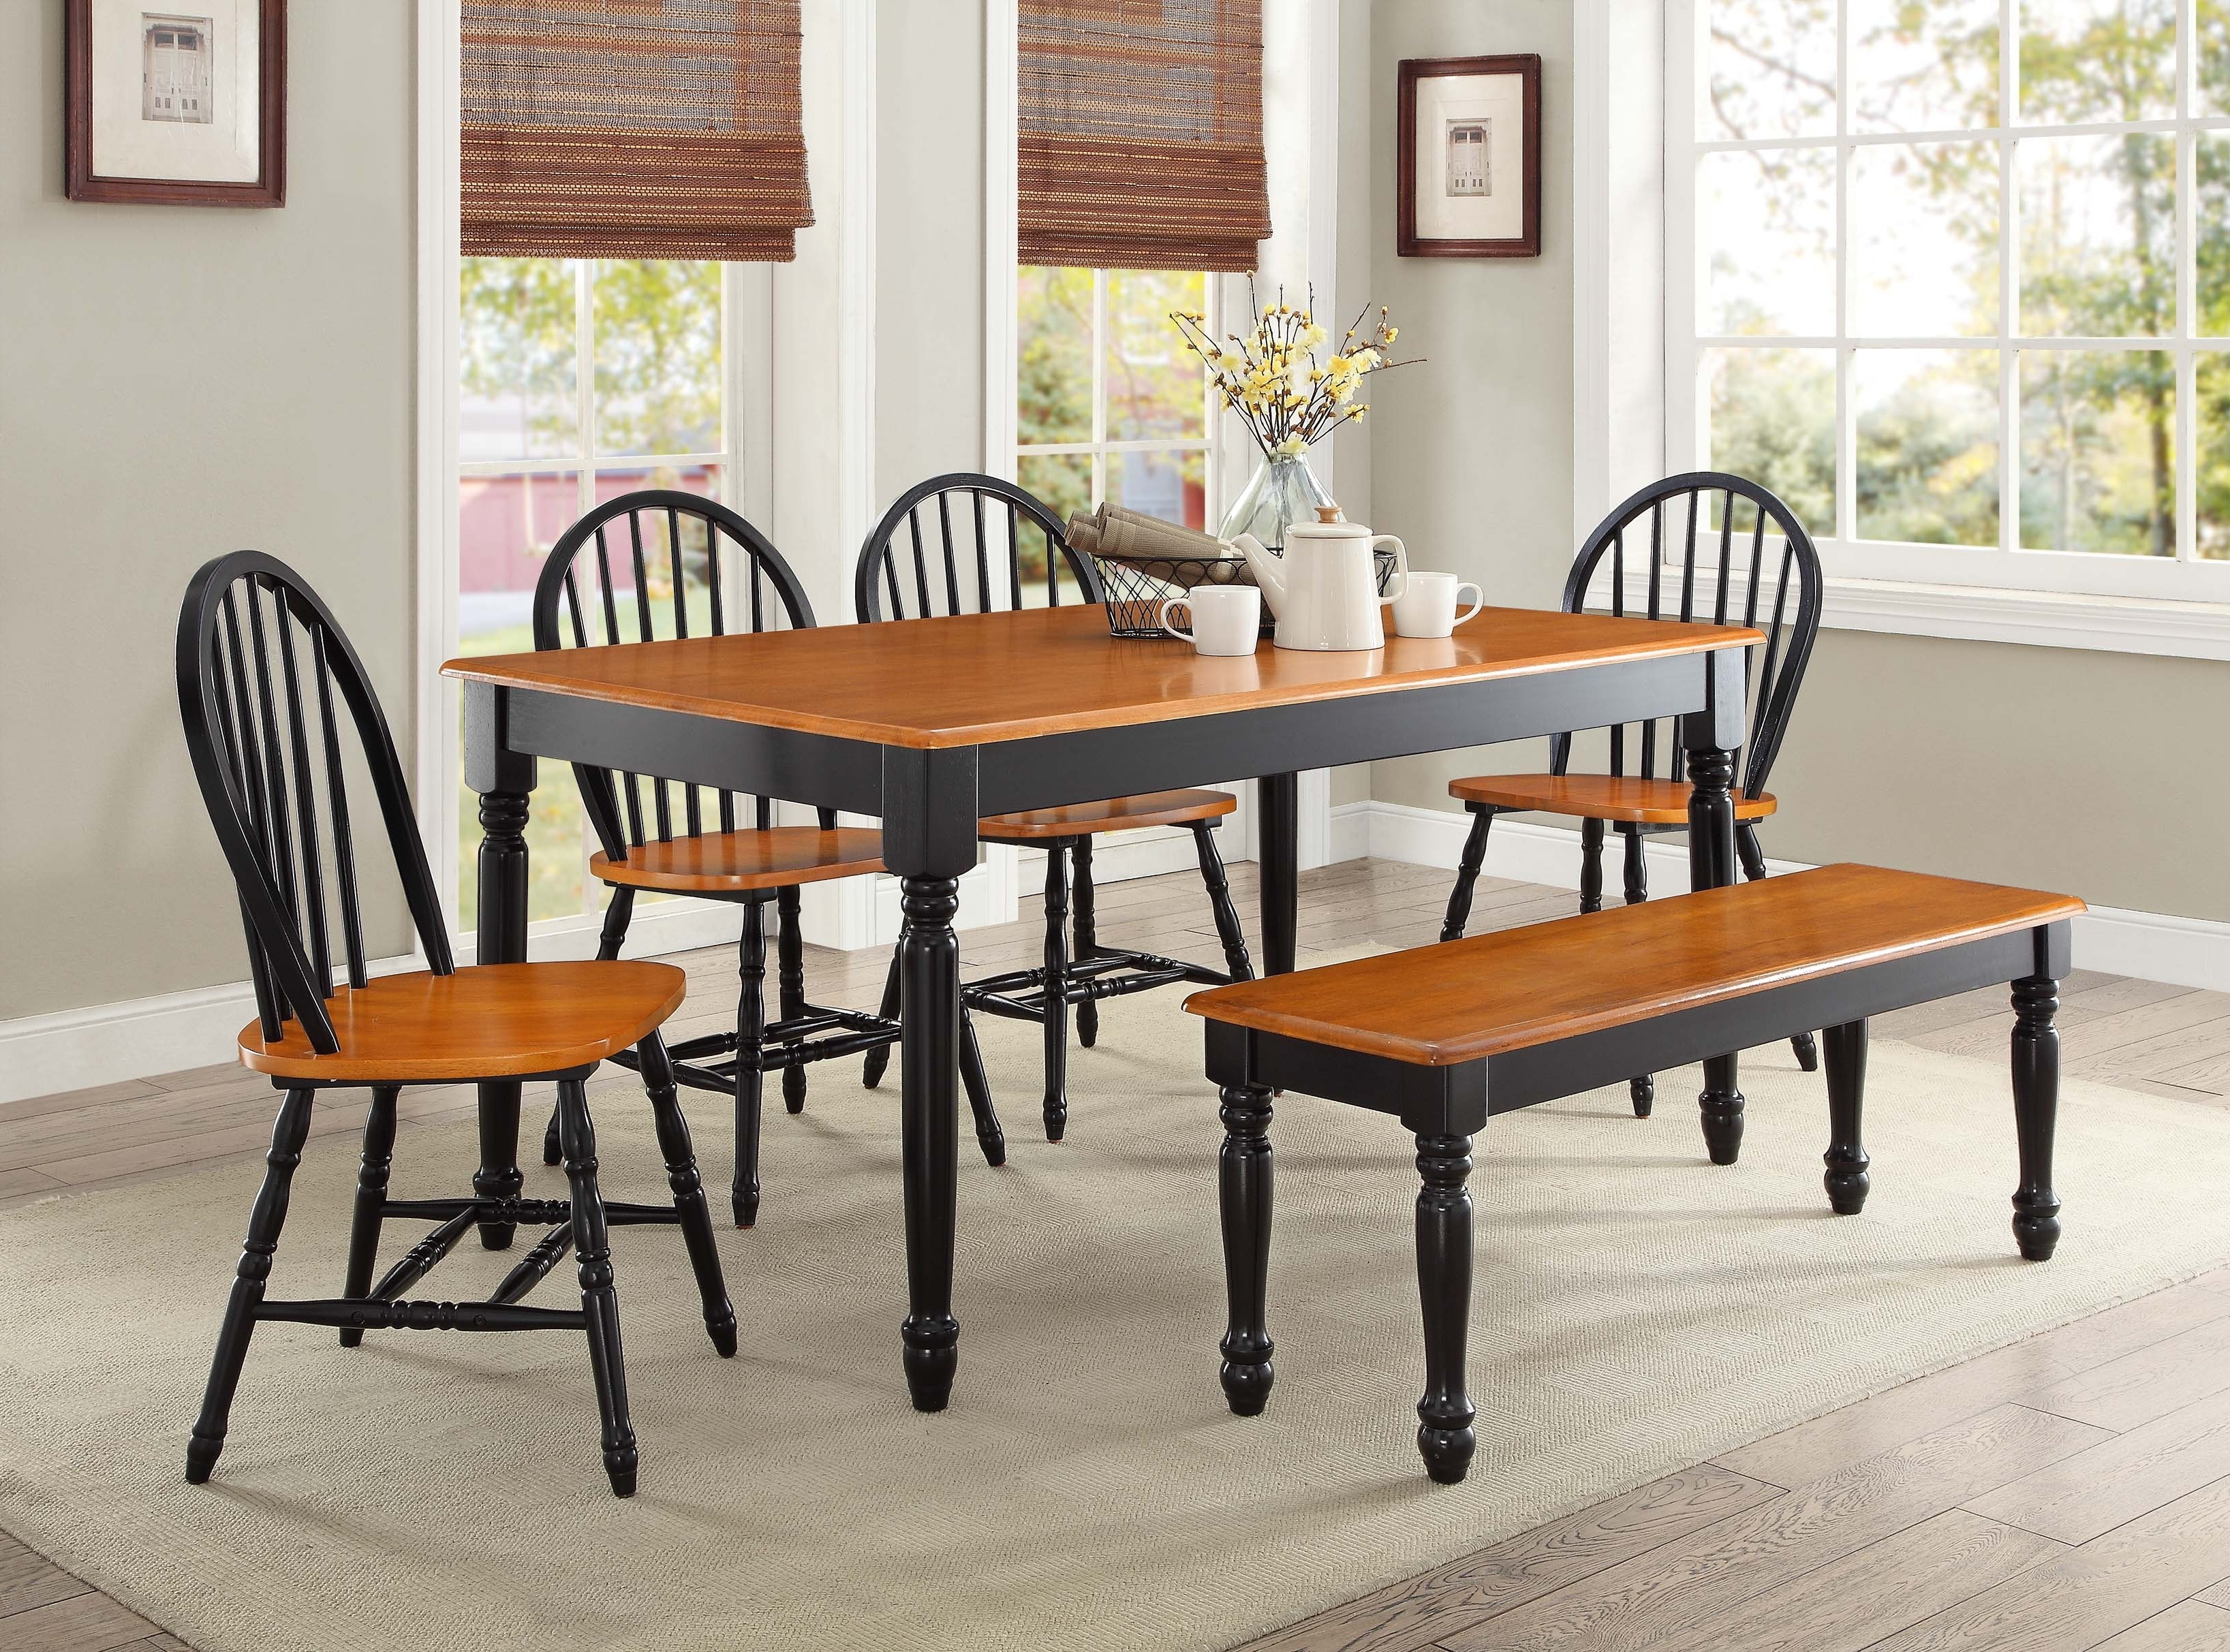 Dining Room Sets At Big Lots — Bluehawkboosters Home Design For Fashionable Macie 5 Piece Round Dining Sets (View 9 of 25)